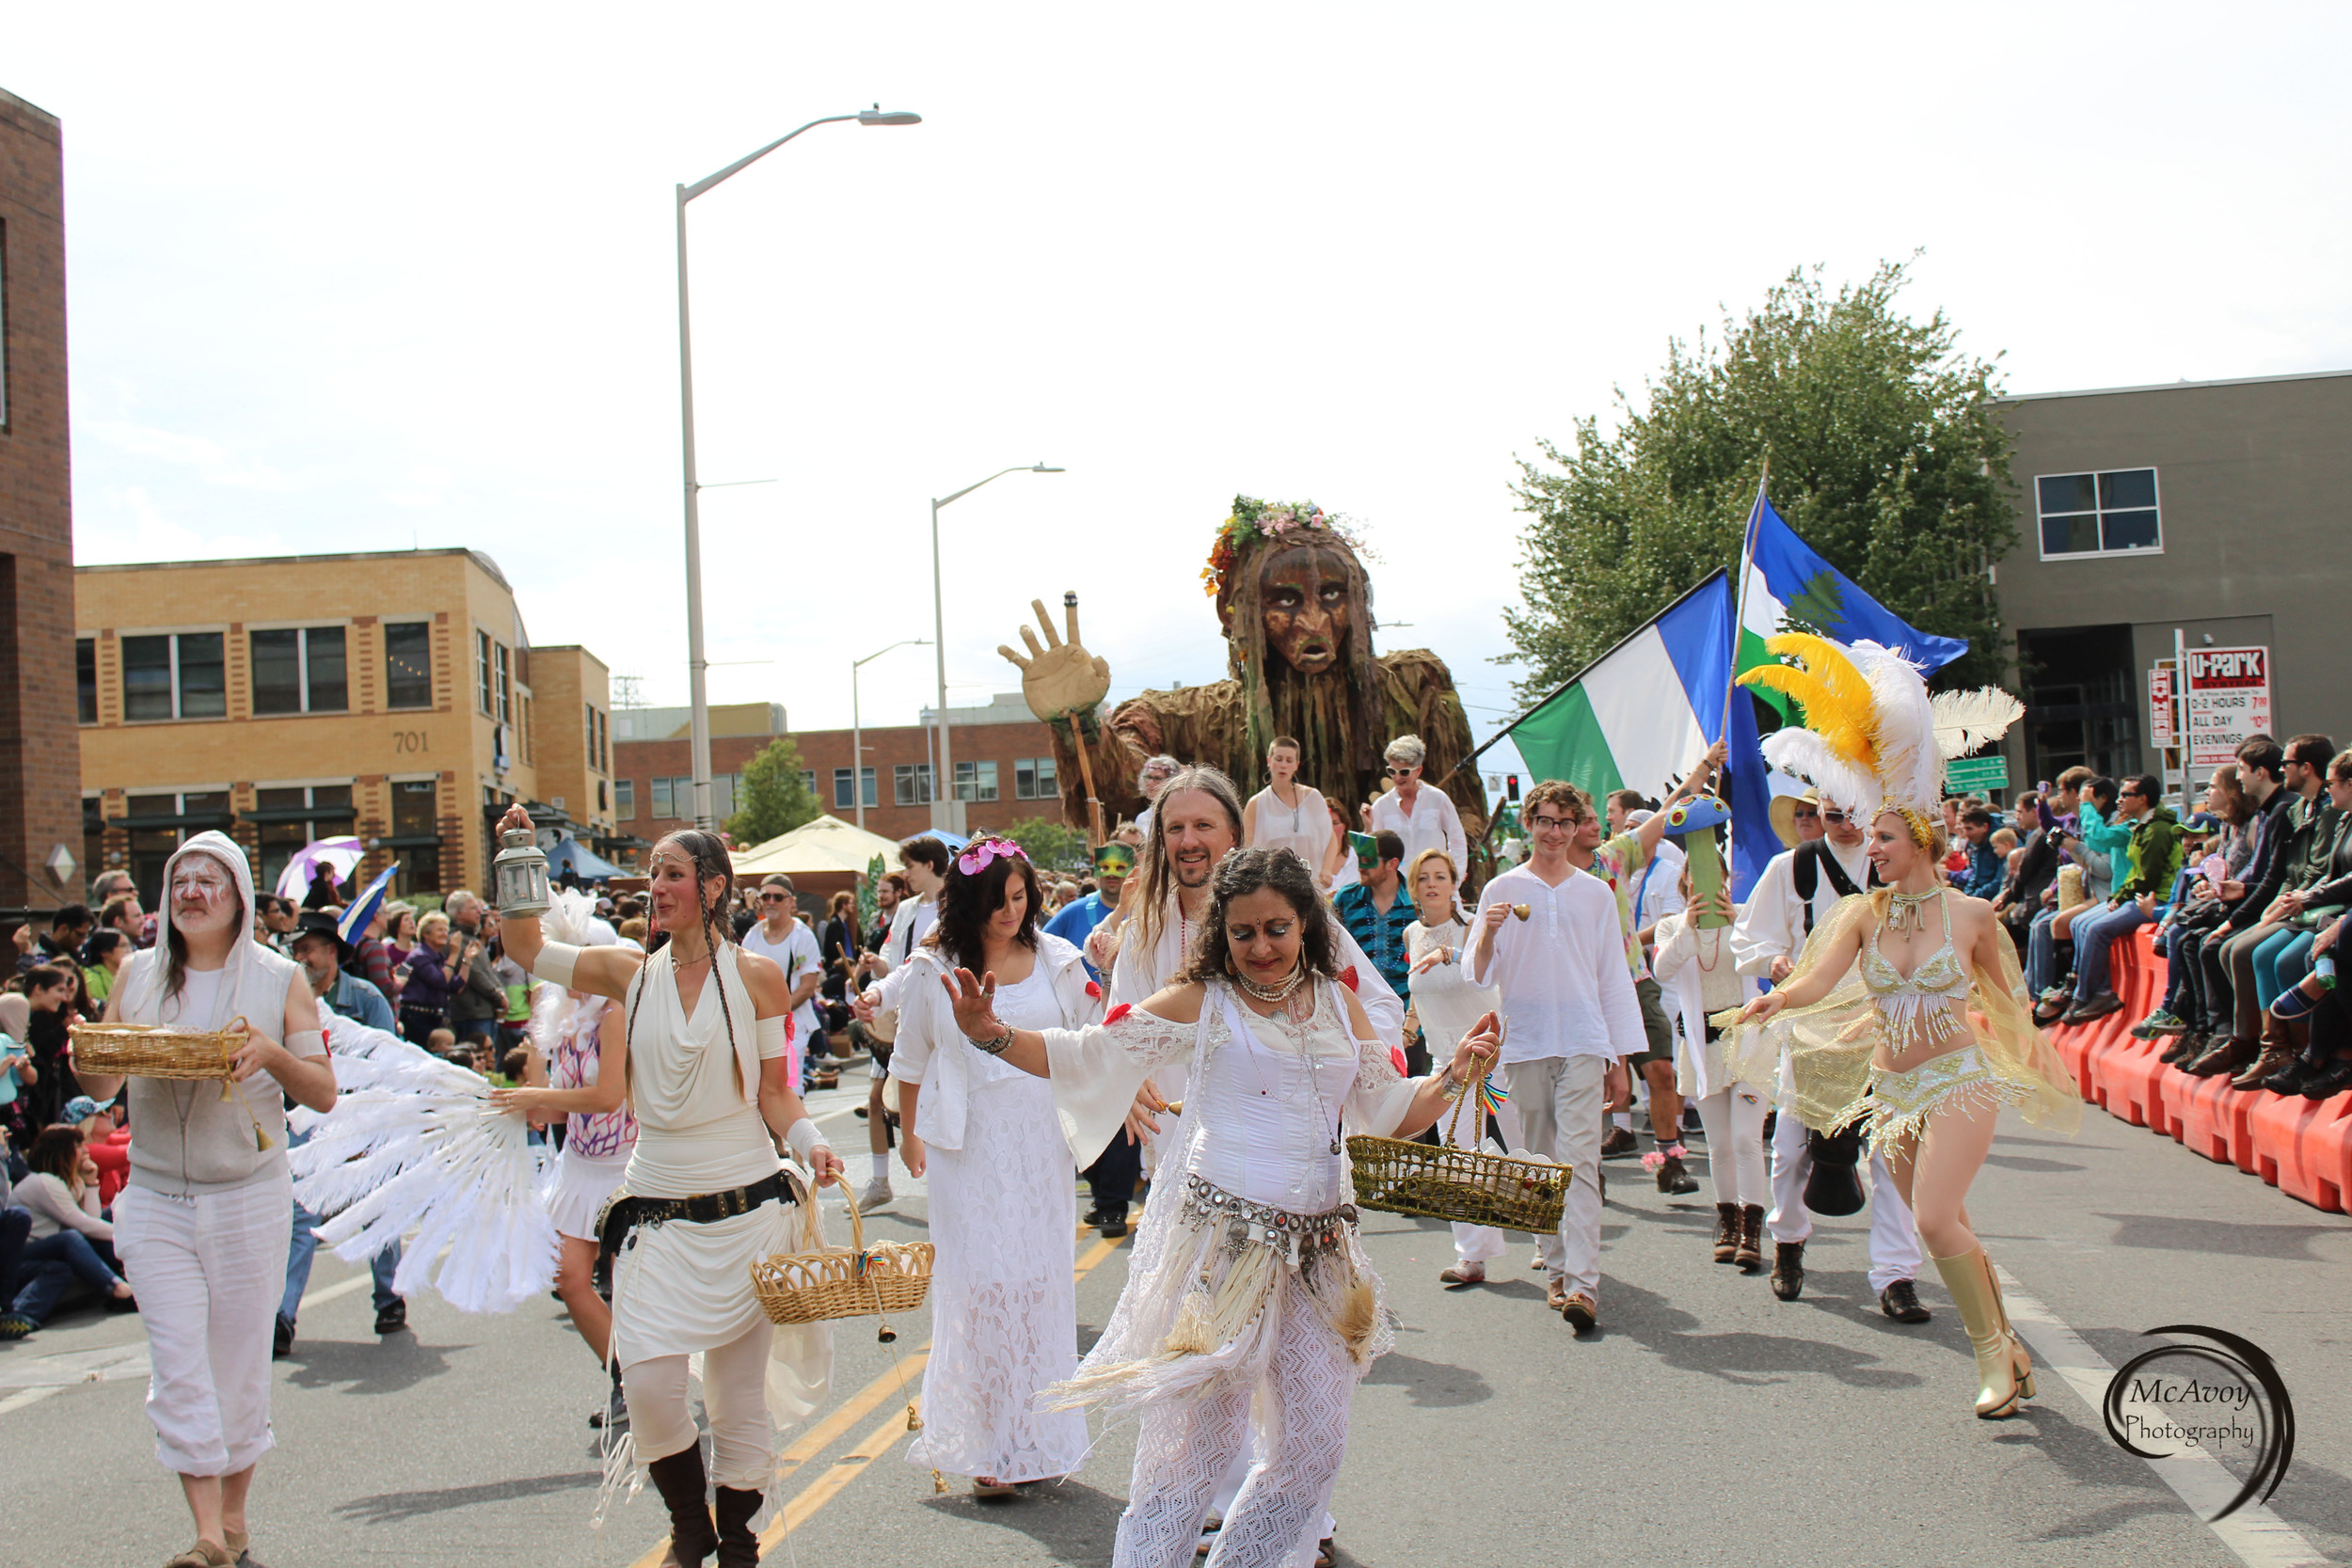 Clad in white, Dream Dance Cascadia and Fremont Drum All-Stars teamed up with CascadiaNow! to spread local culture and love to strengthen our community.